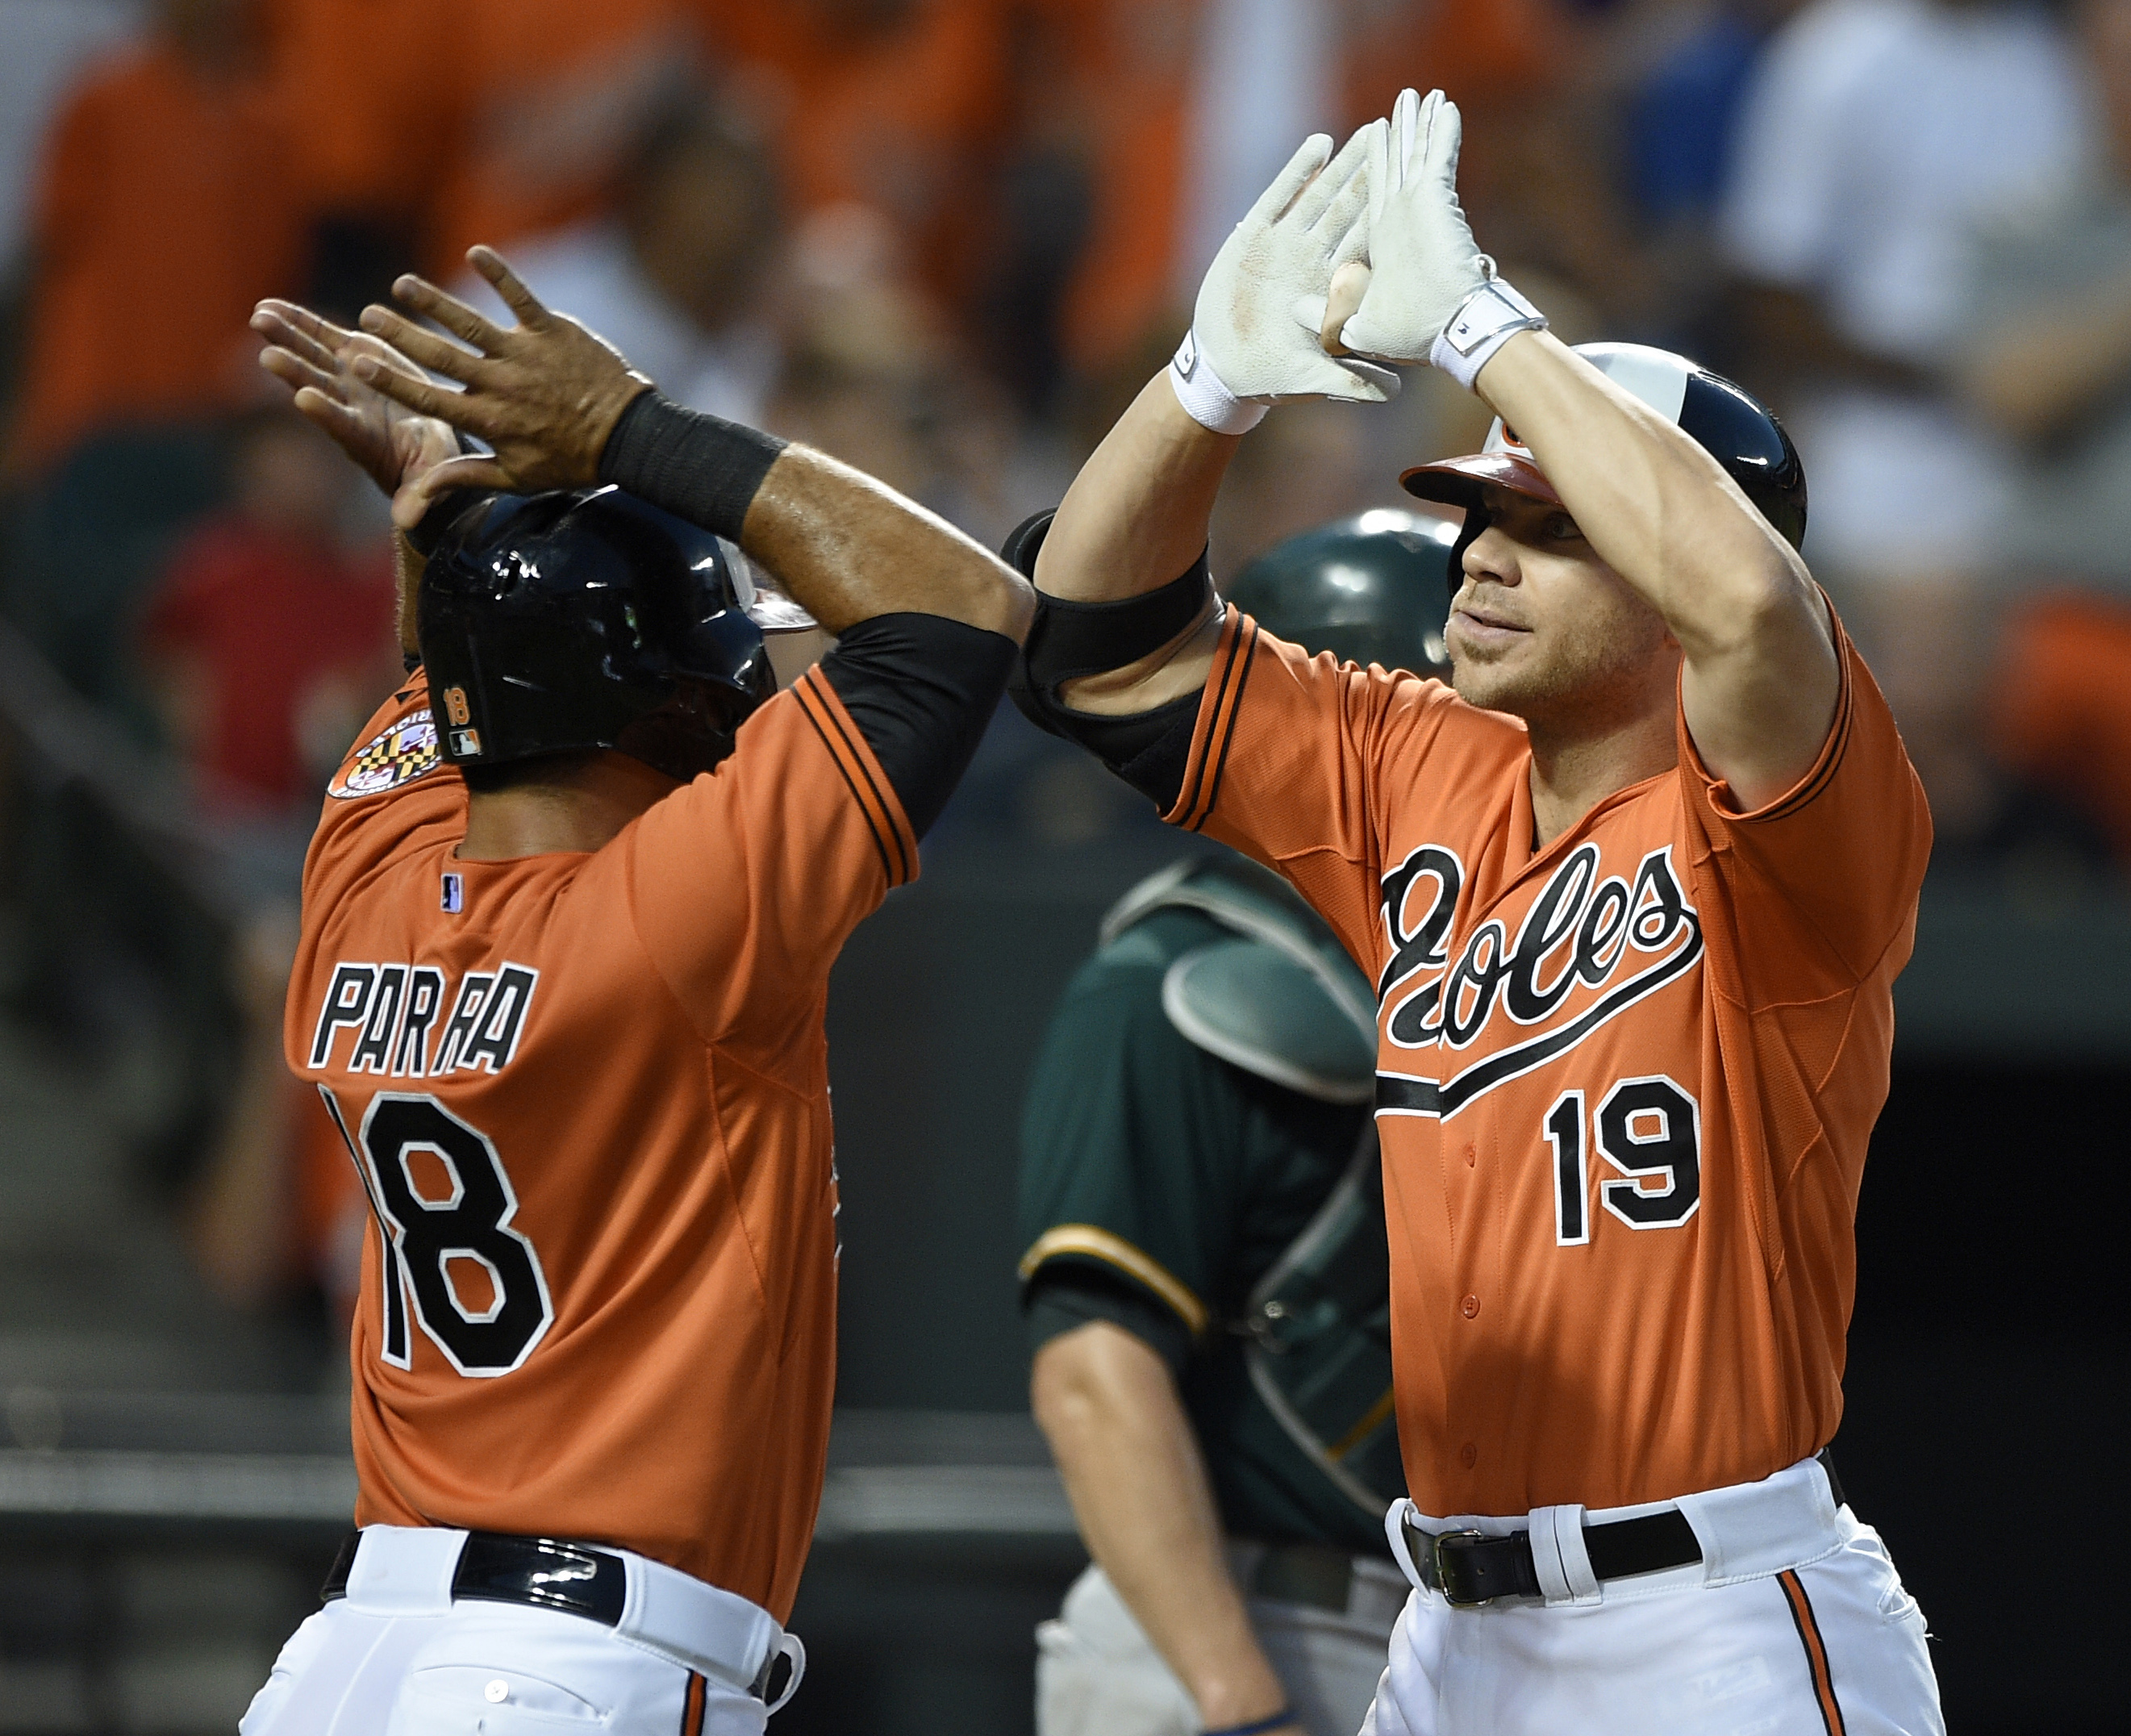 Baltimore Orioles' Chris Davis (19) celebrates his two-run home run with Gerardo Parra (18) against the Oakland Athletics during the fourth inning of a baseball game, Saturday, Aug. 15, 2015, in Baltimore. (AP Photo/Nick Wass)